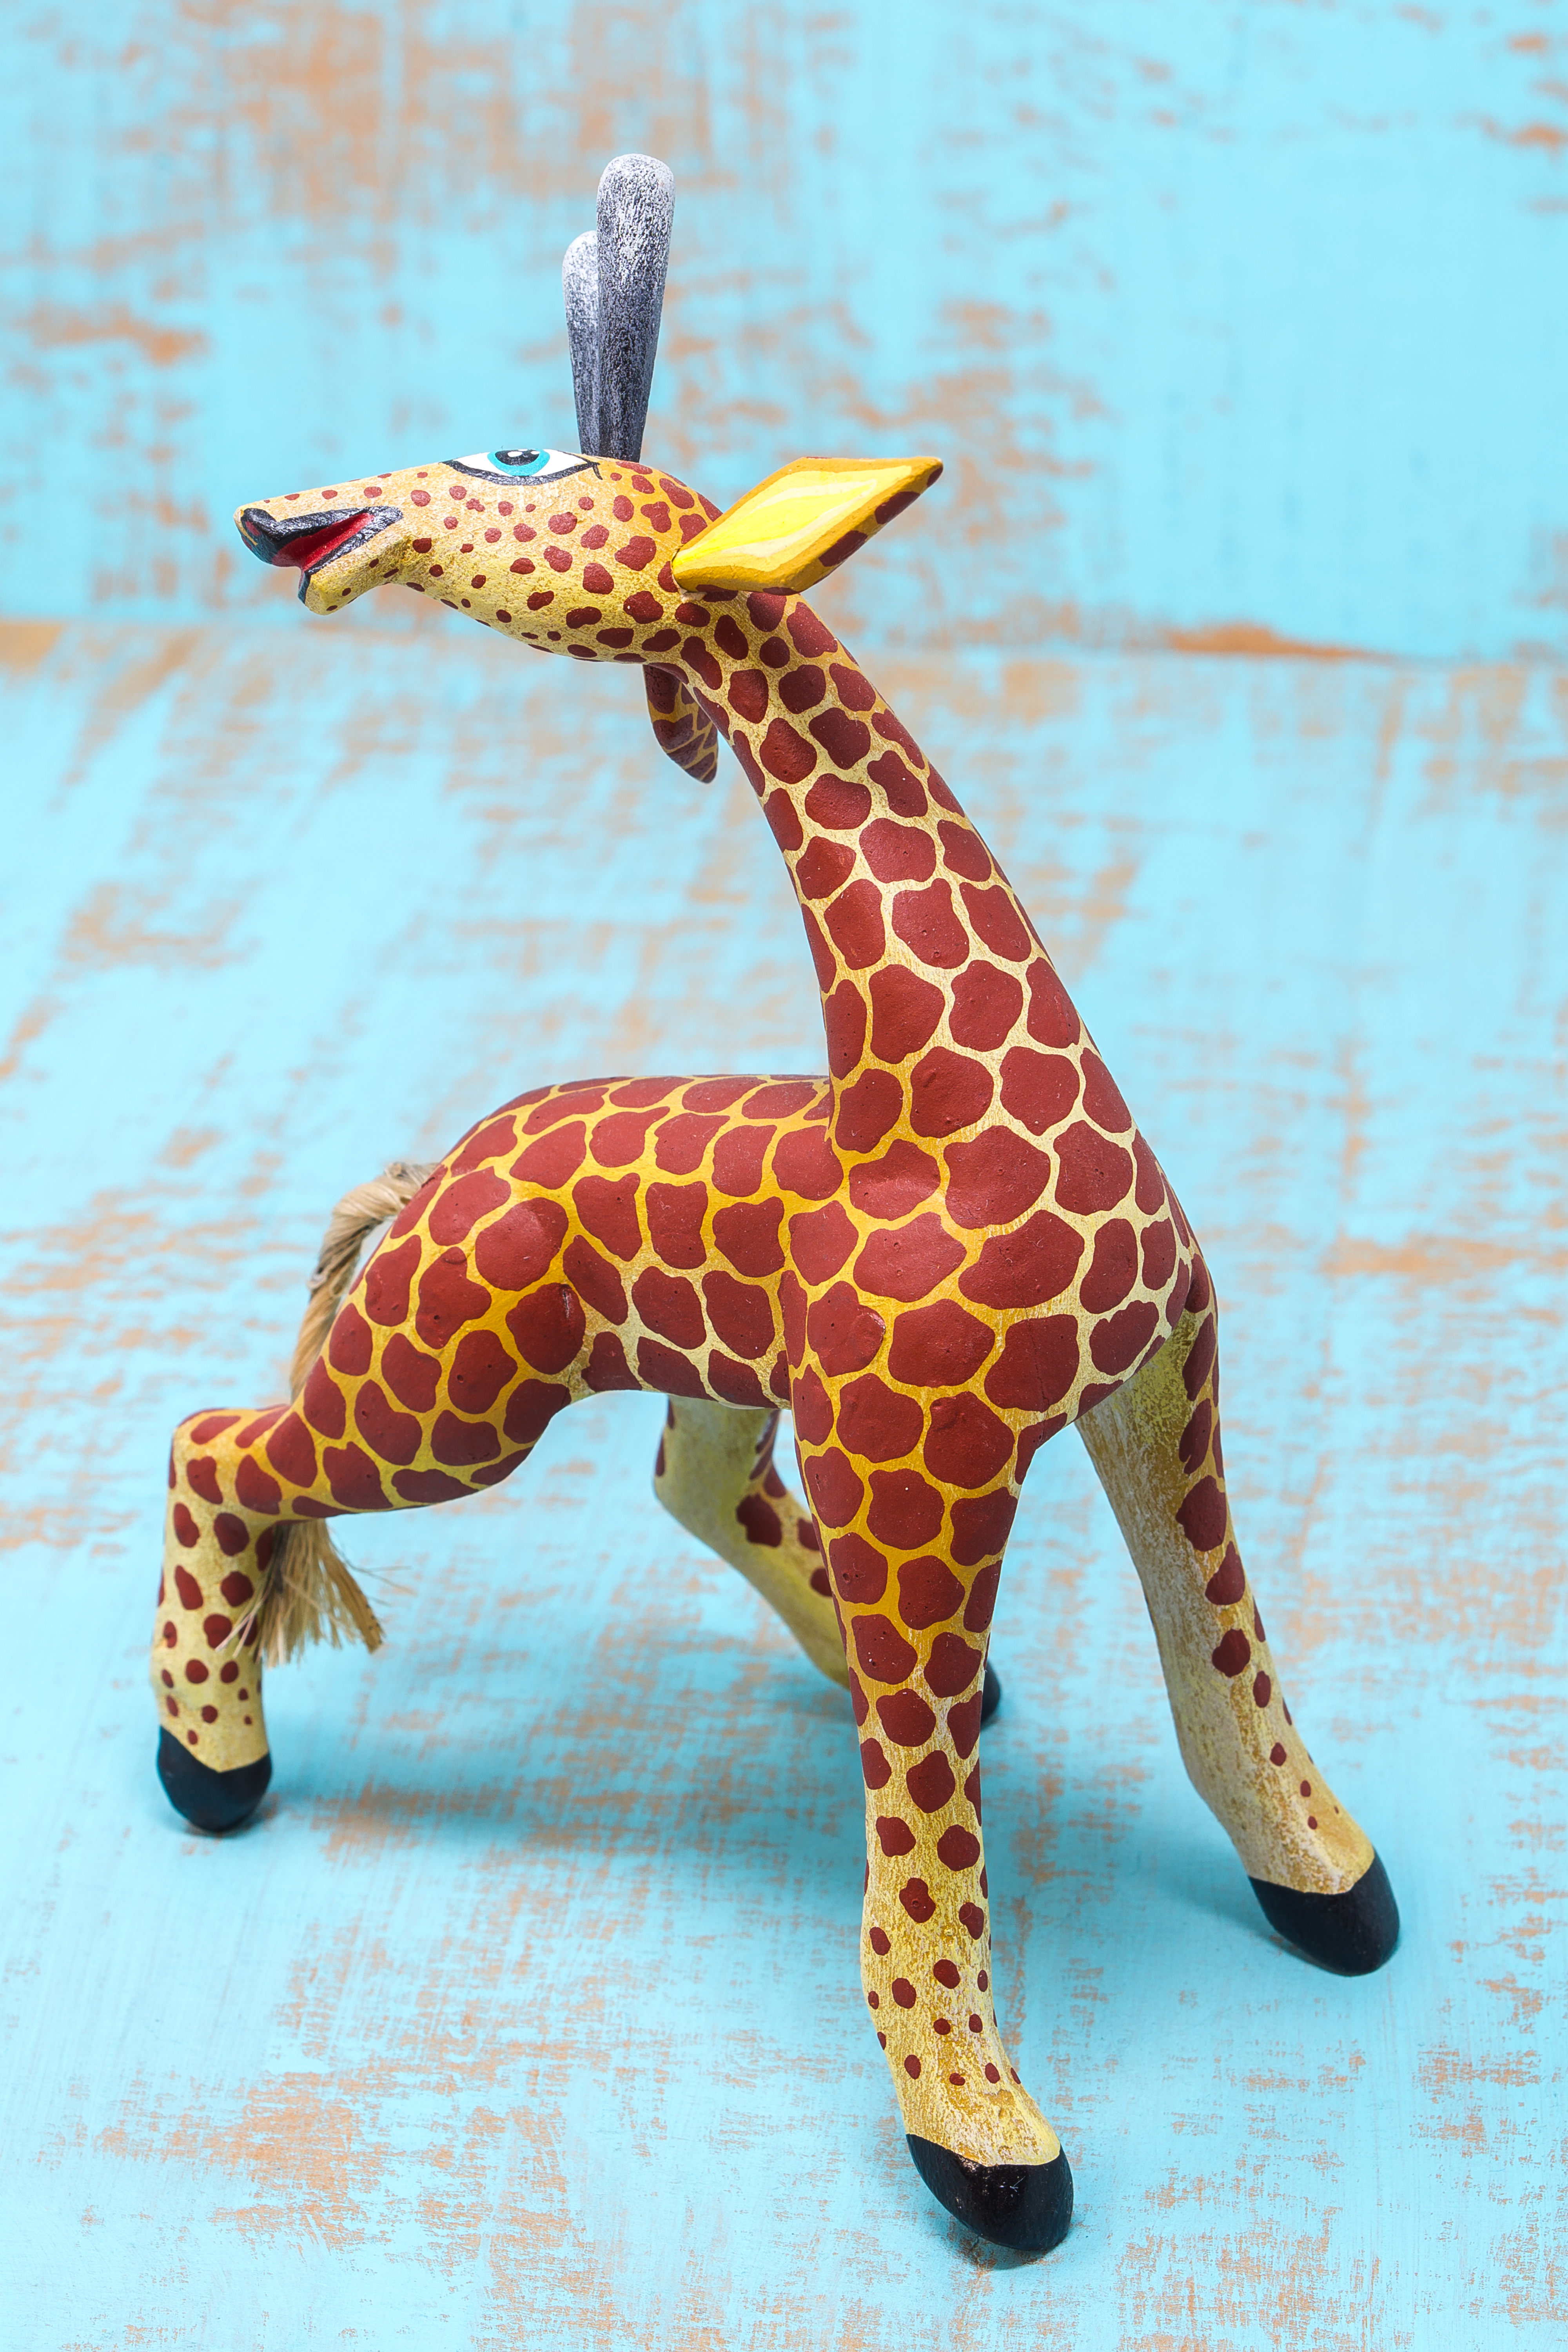 Oaxacan wood carving of a giraffe